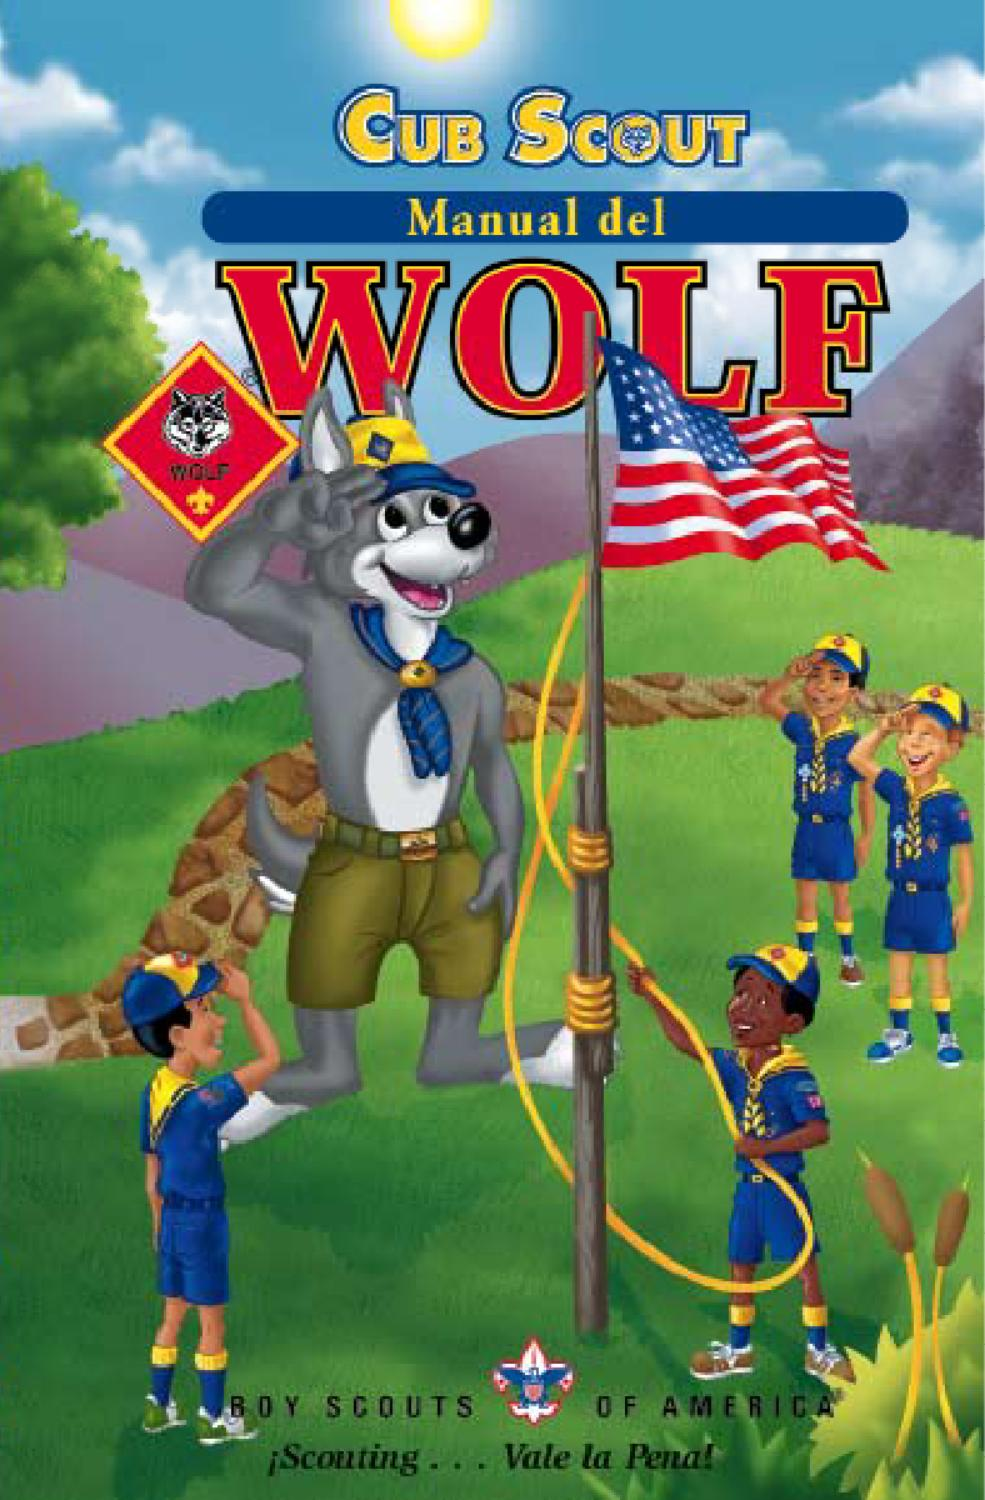 Manual Wolf para Cub Scout by Hector Antunez de Mayolo - issuu